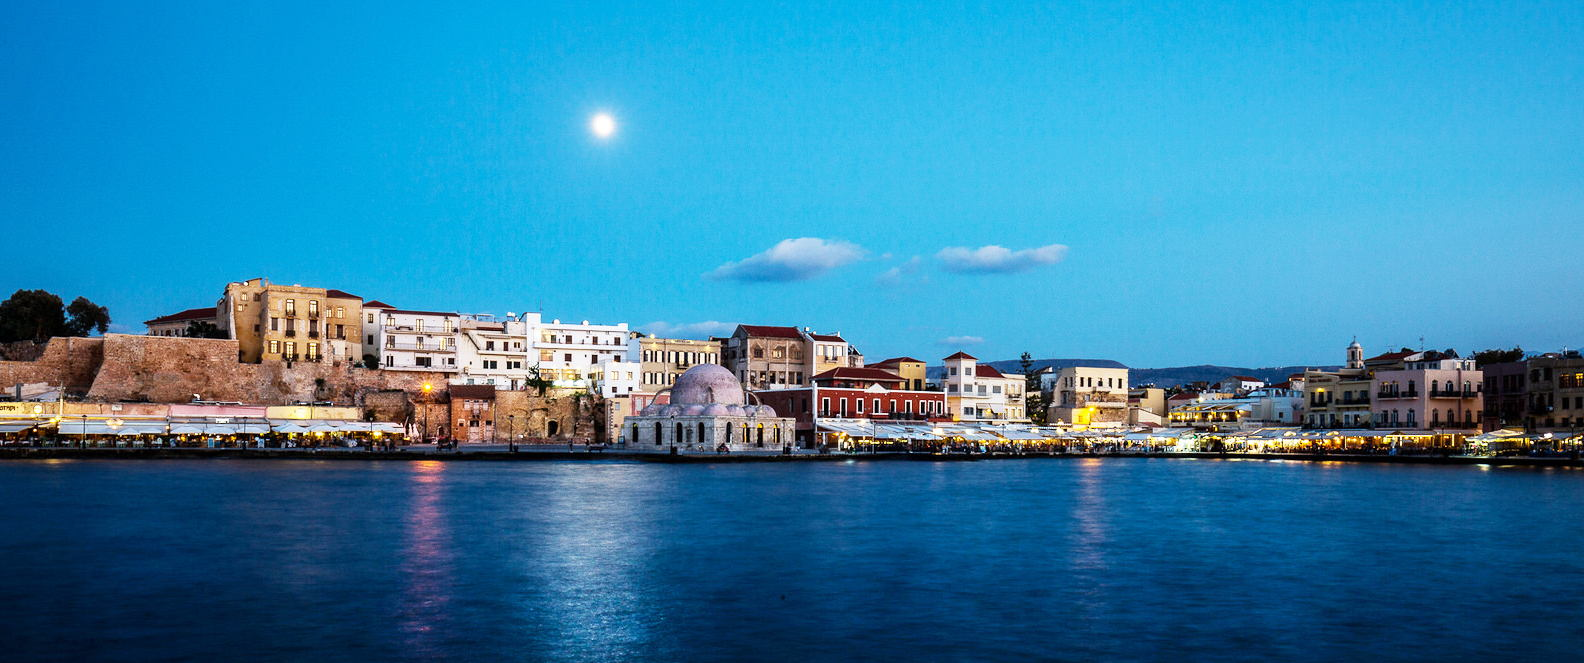 Chania real estate properties for sale